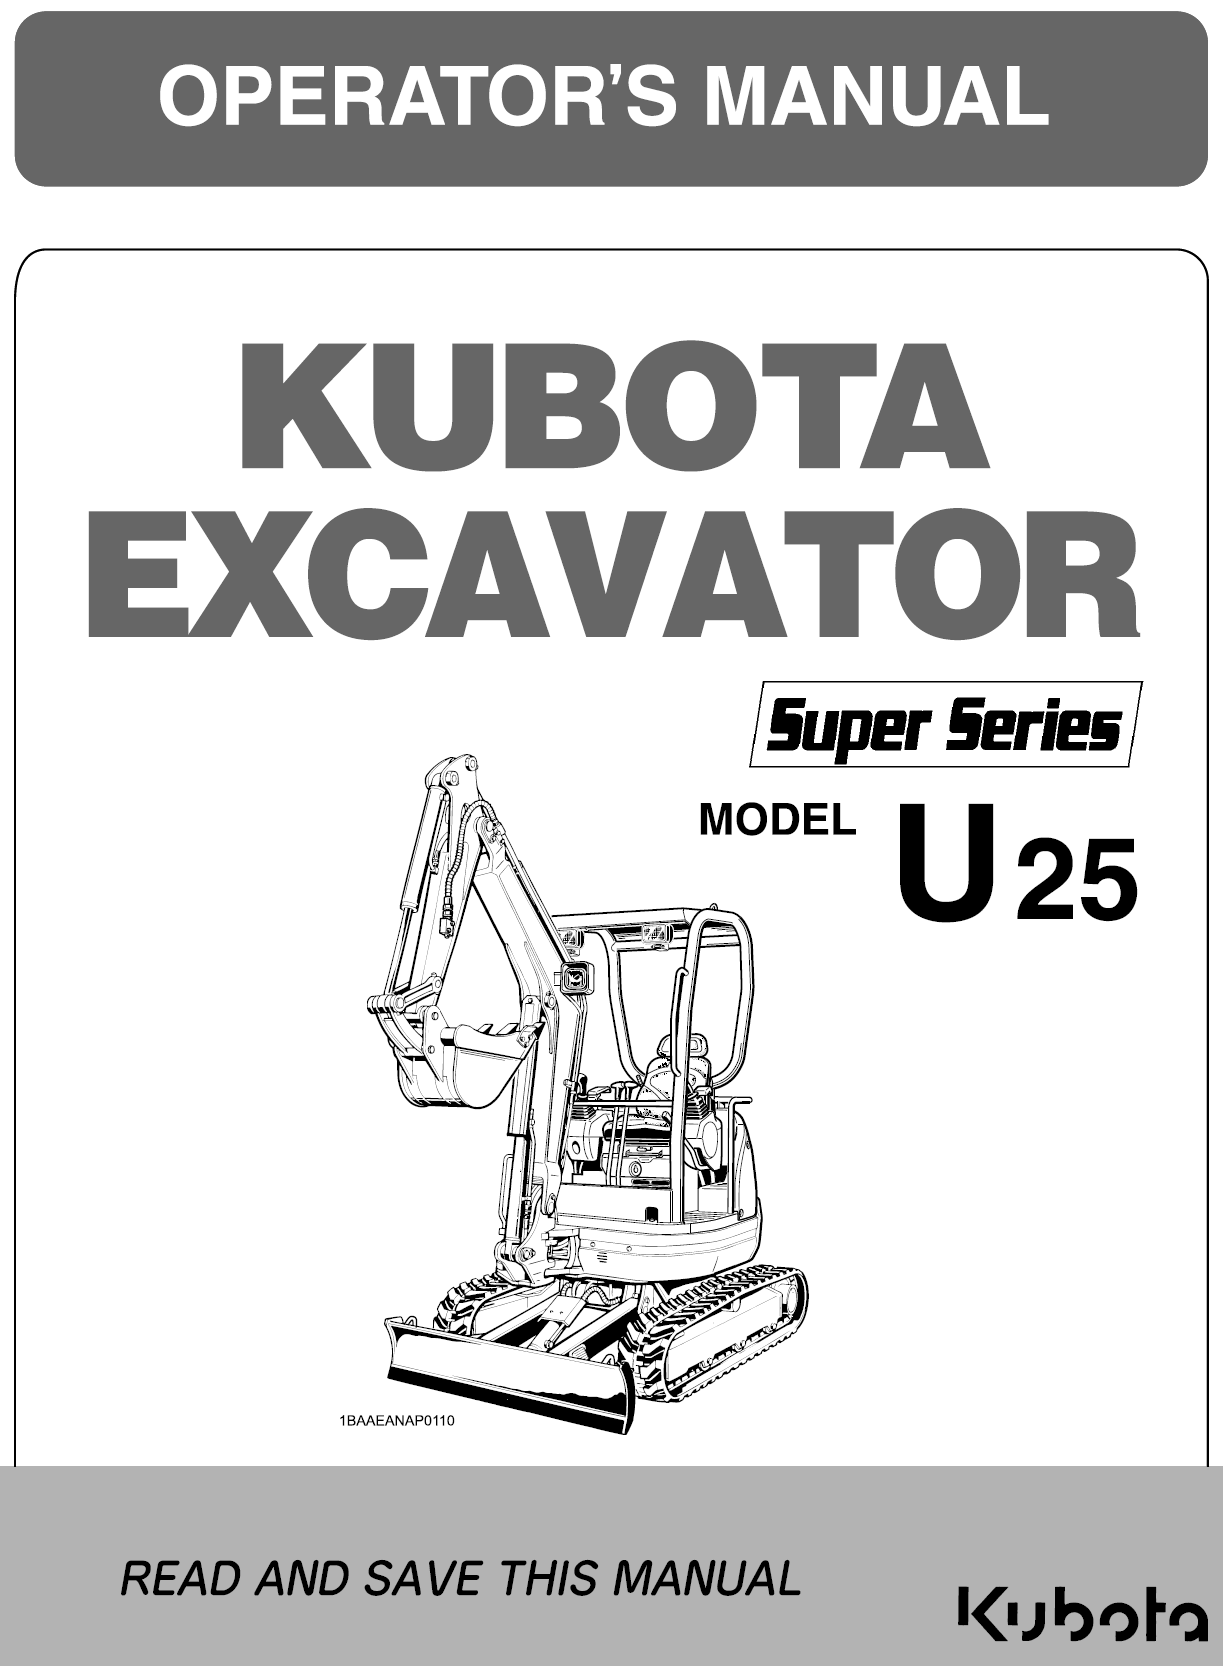 Kubota U25 - Super Series Operator's Manual | Garton Tractor | California |  Kubota & New Holland Tractors Equipment